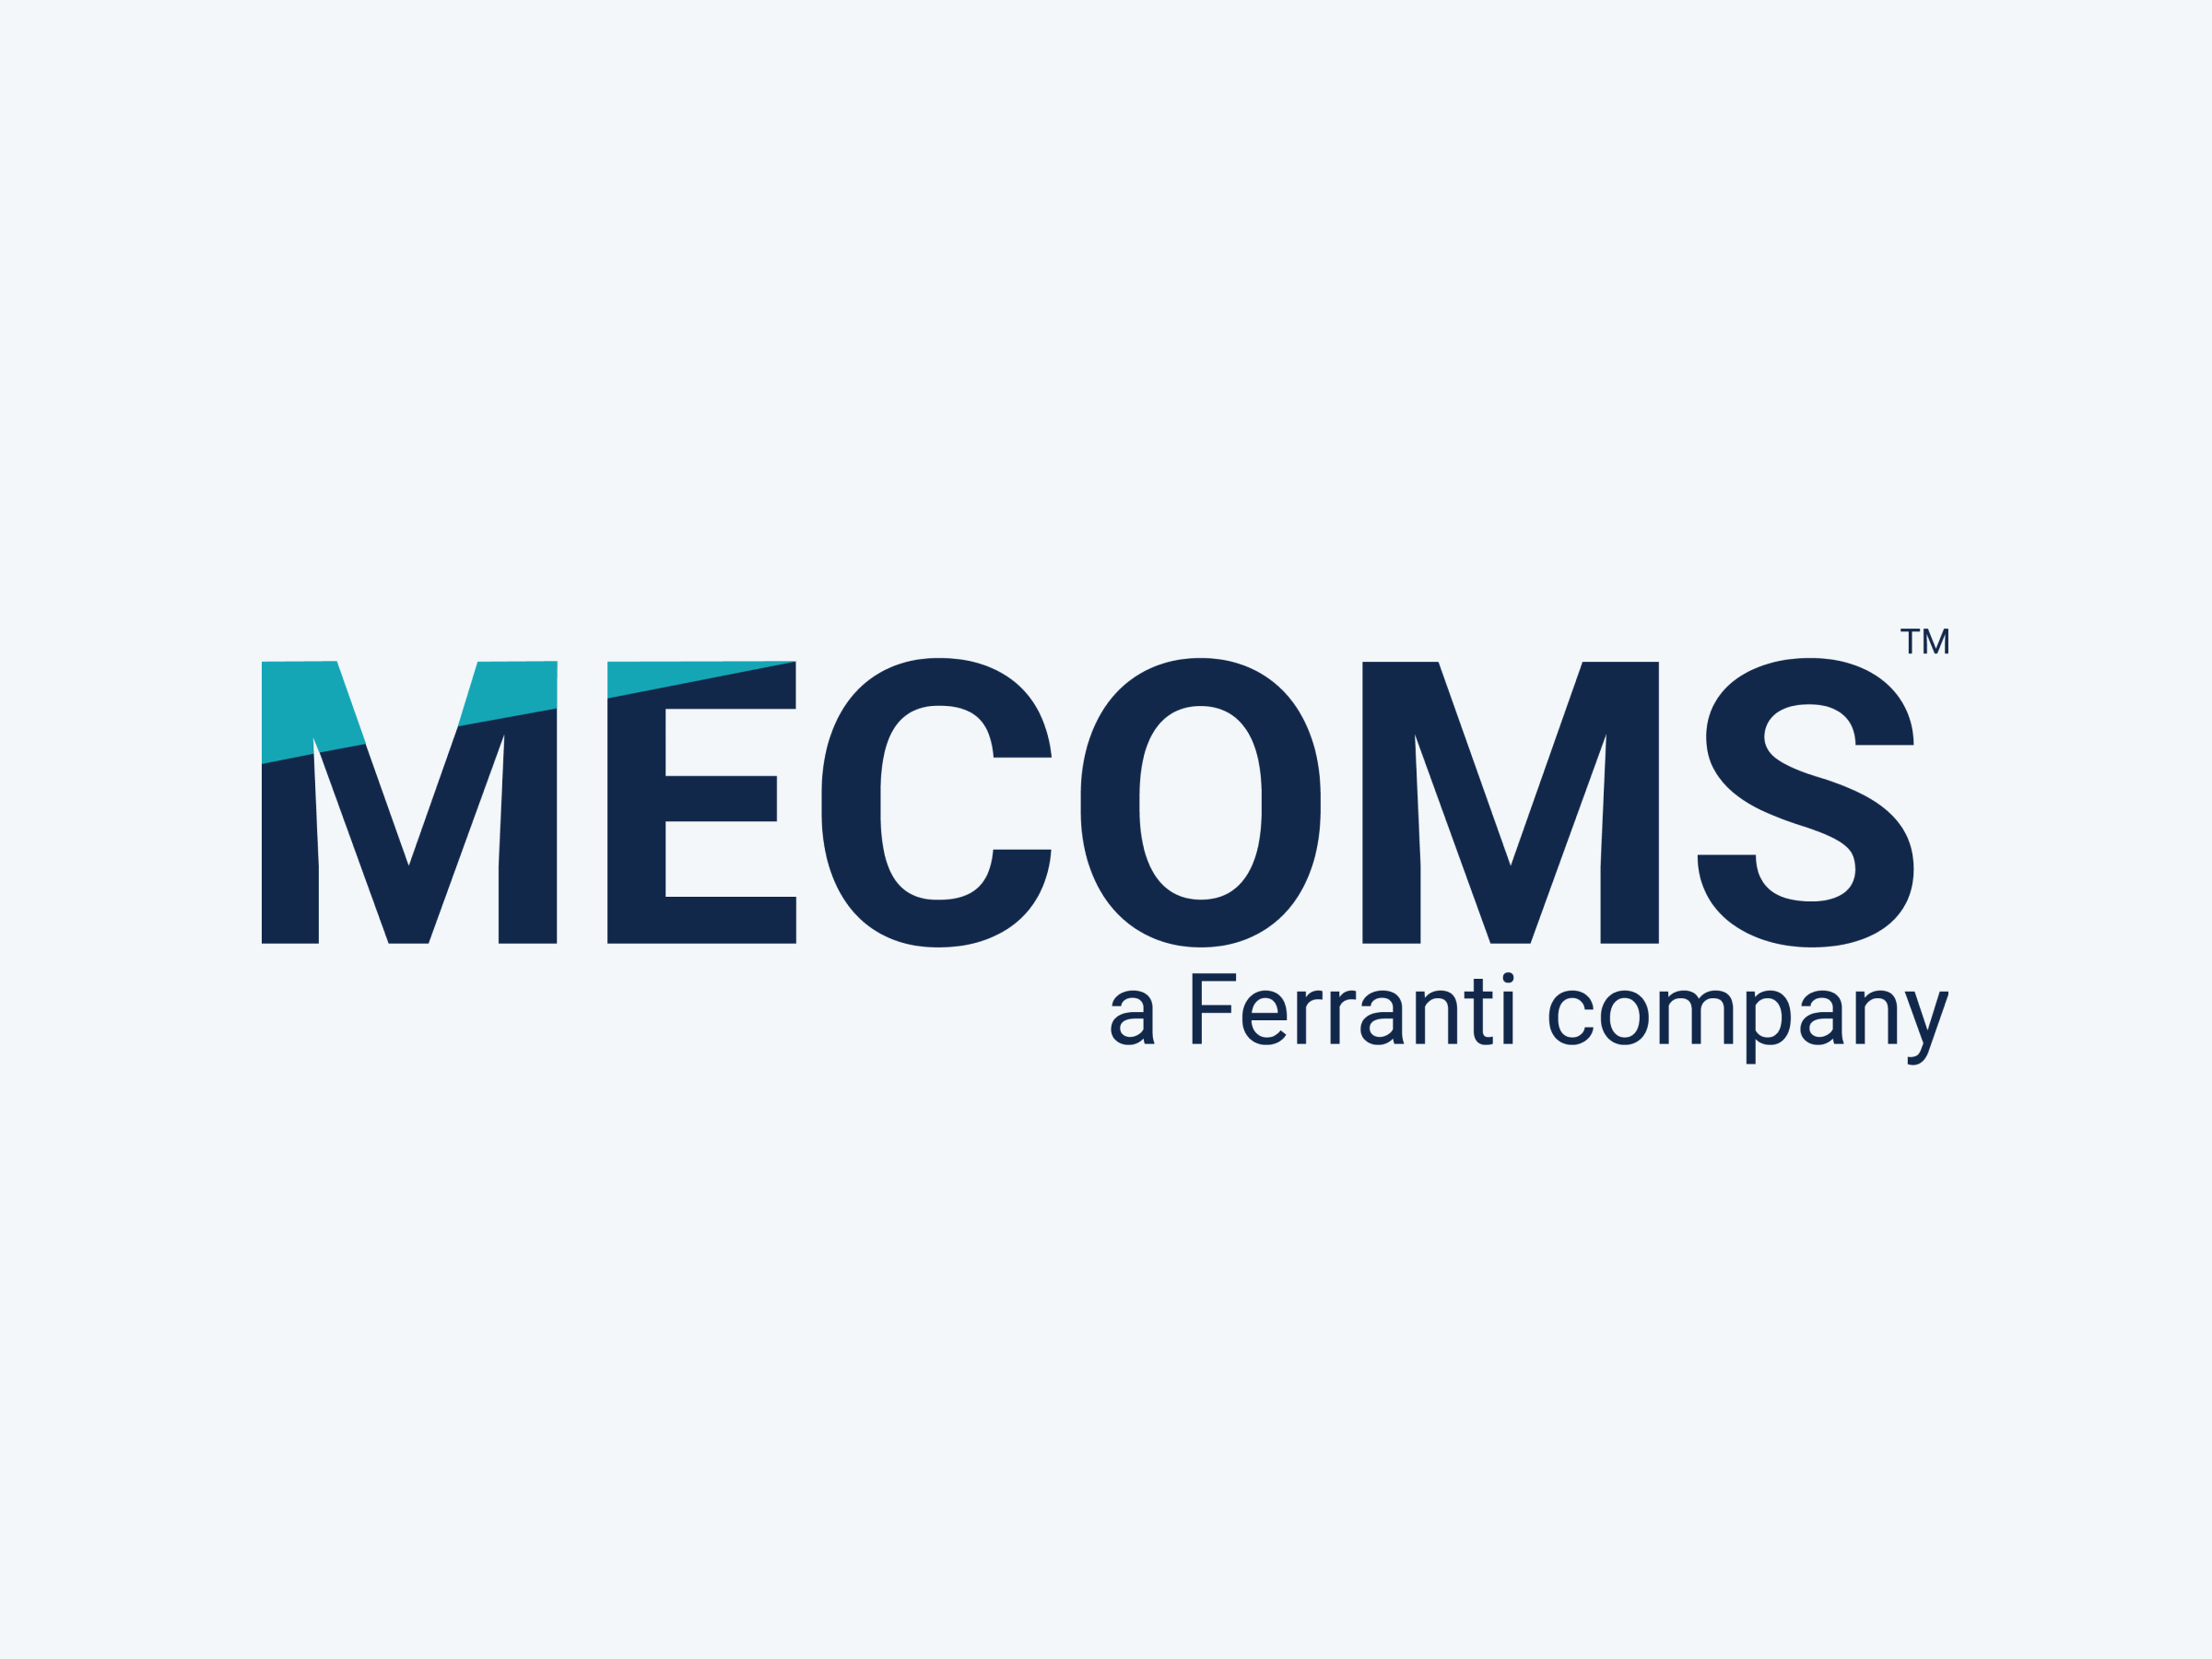 Mecoms